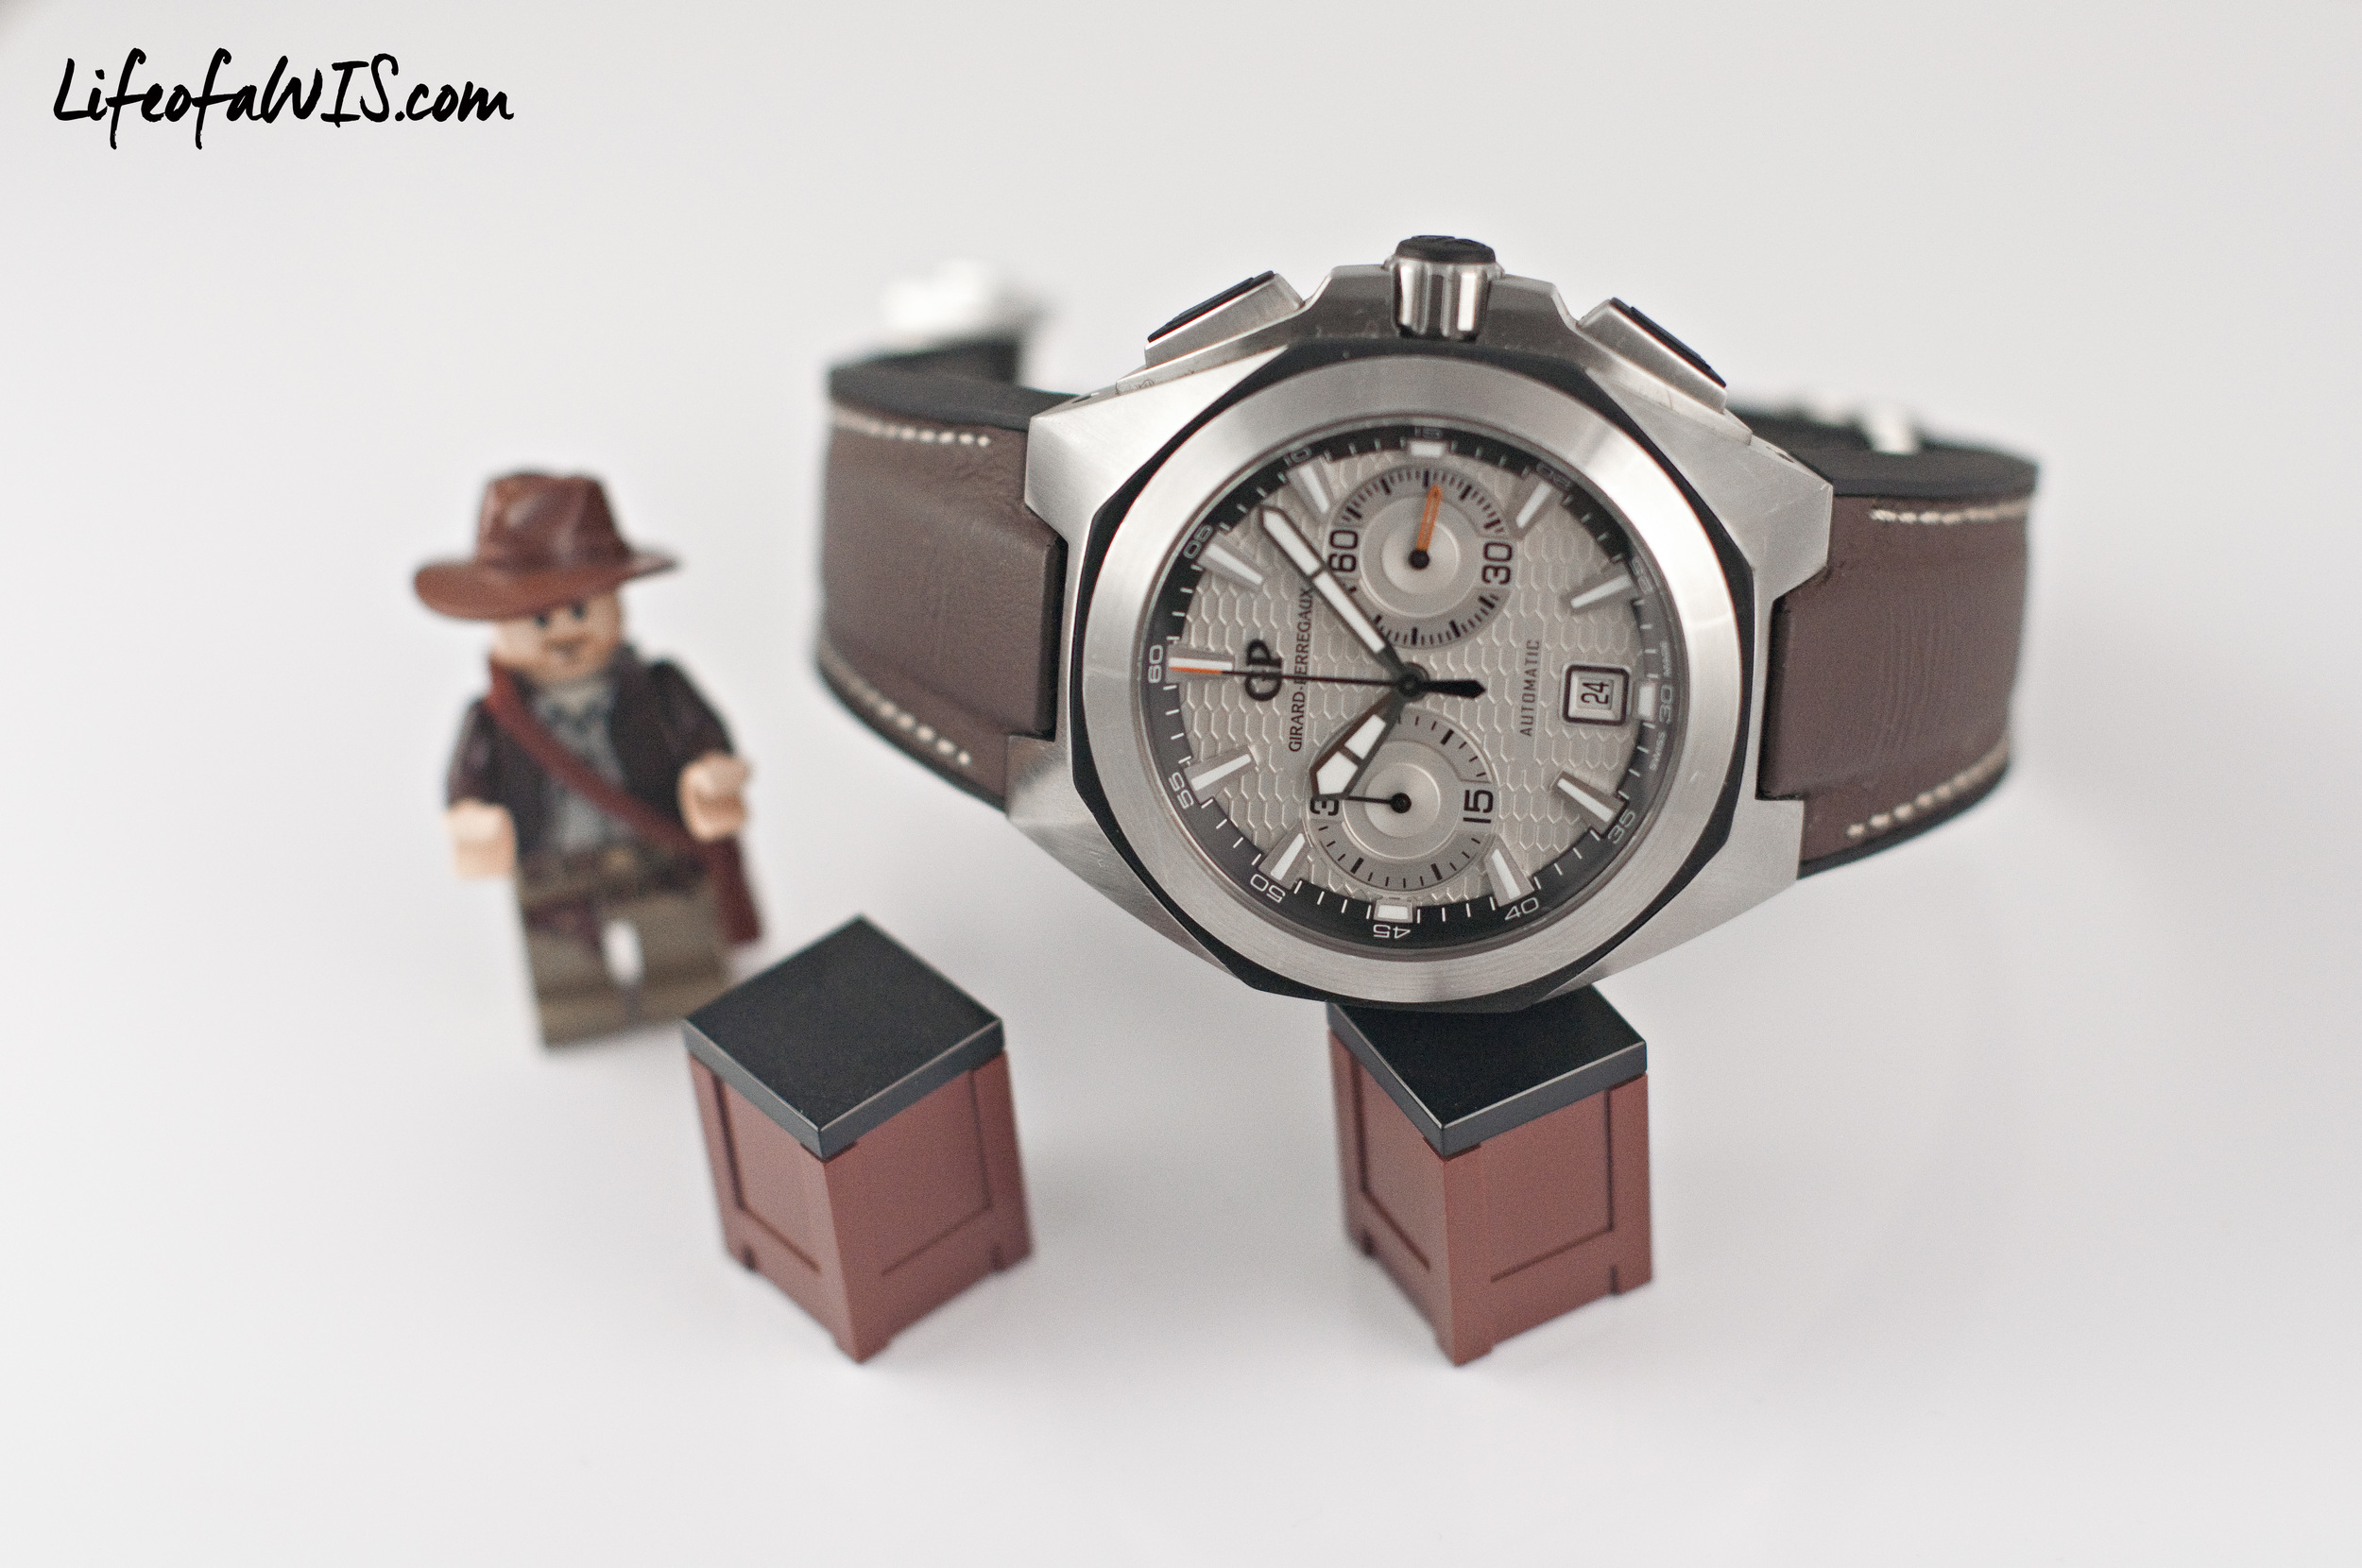 The perfect watch for Indiana Jones?